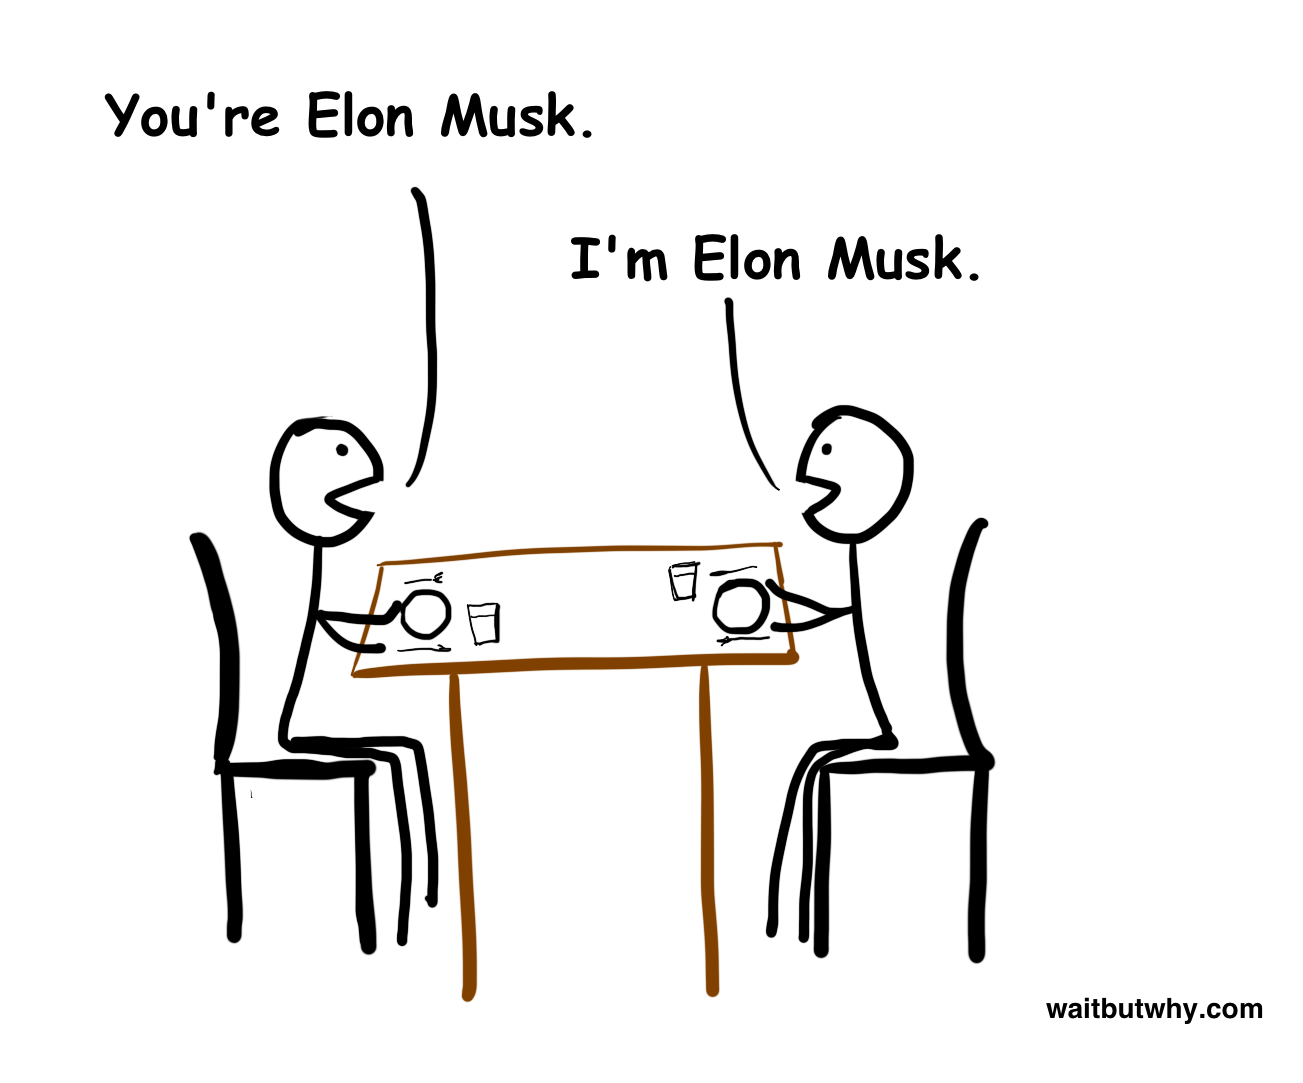 stick-figures-eating-at-table-you're-elon-musk-I'm-elon-musk